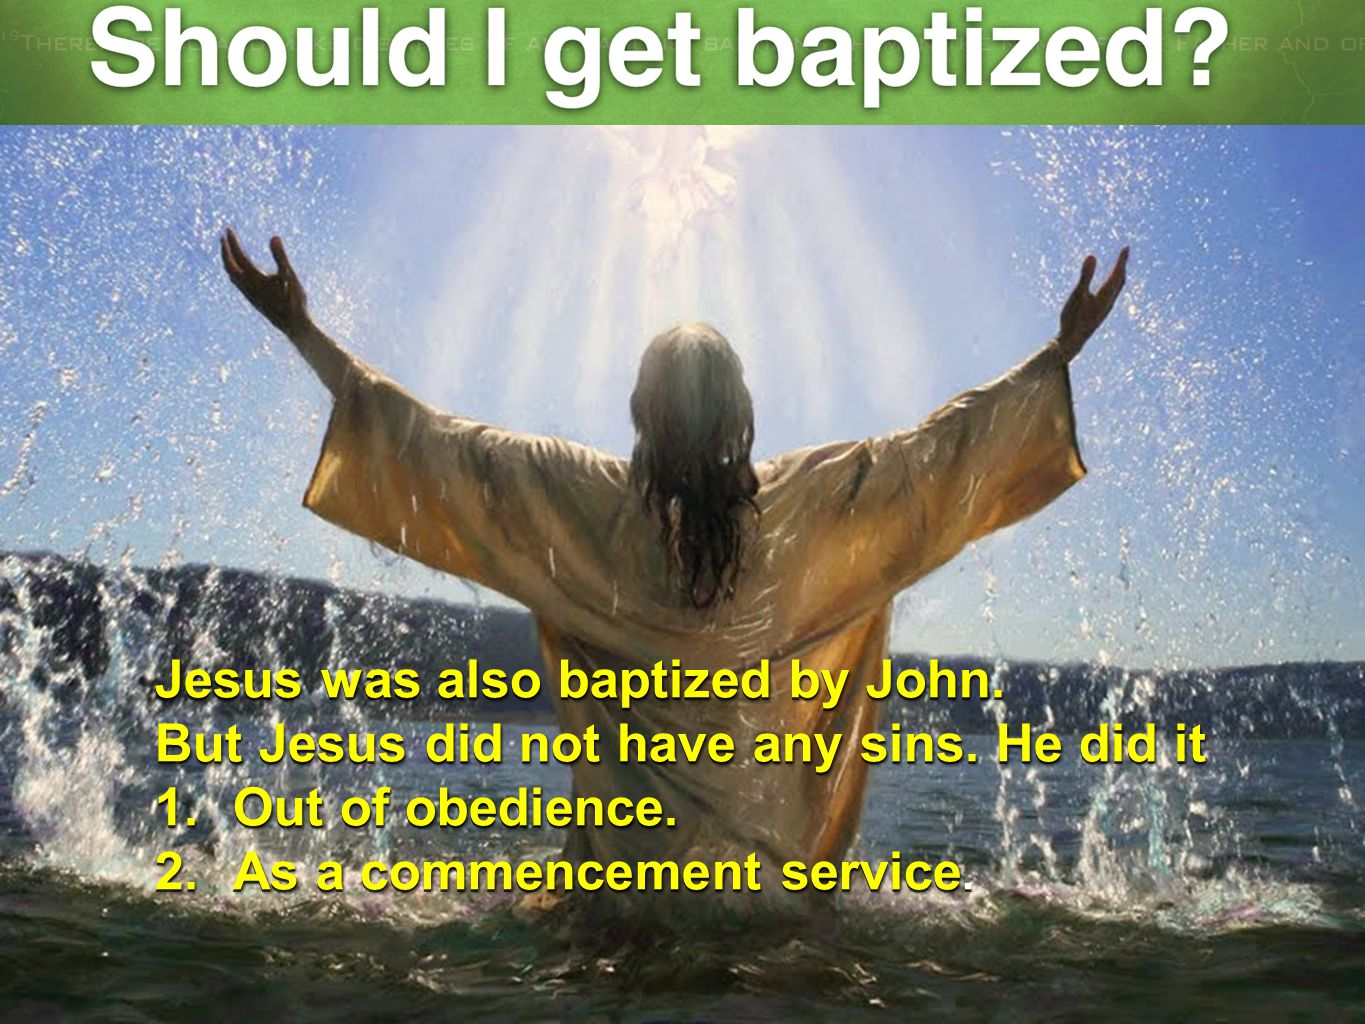 Jesus was also baptized by John.